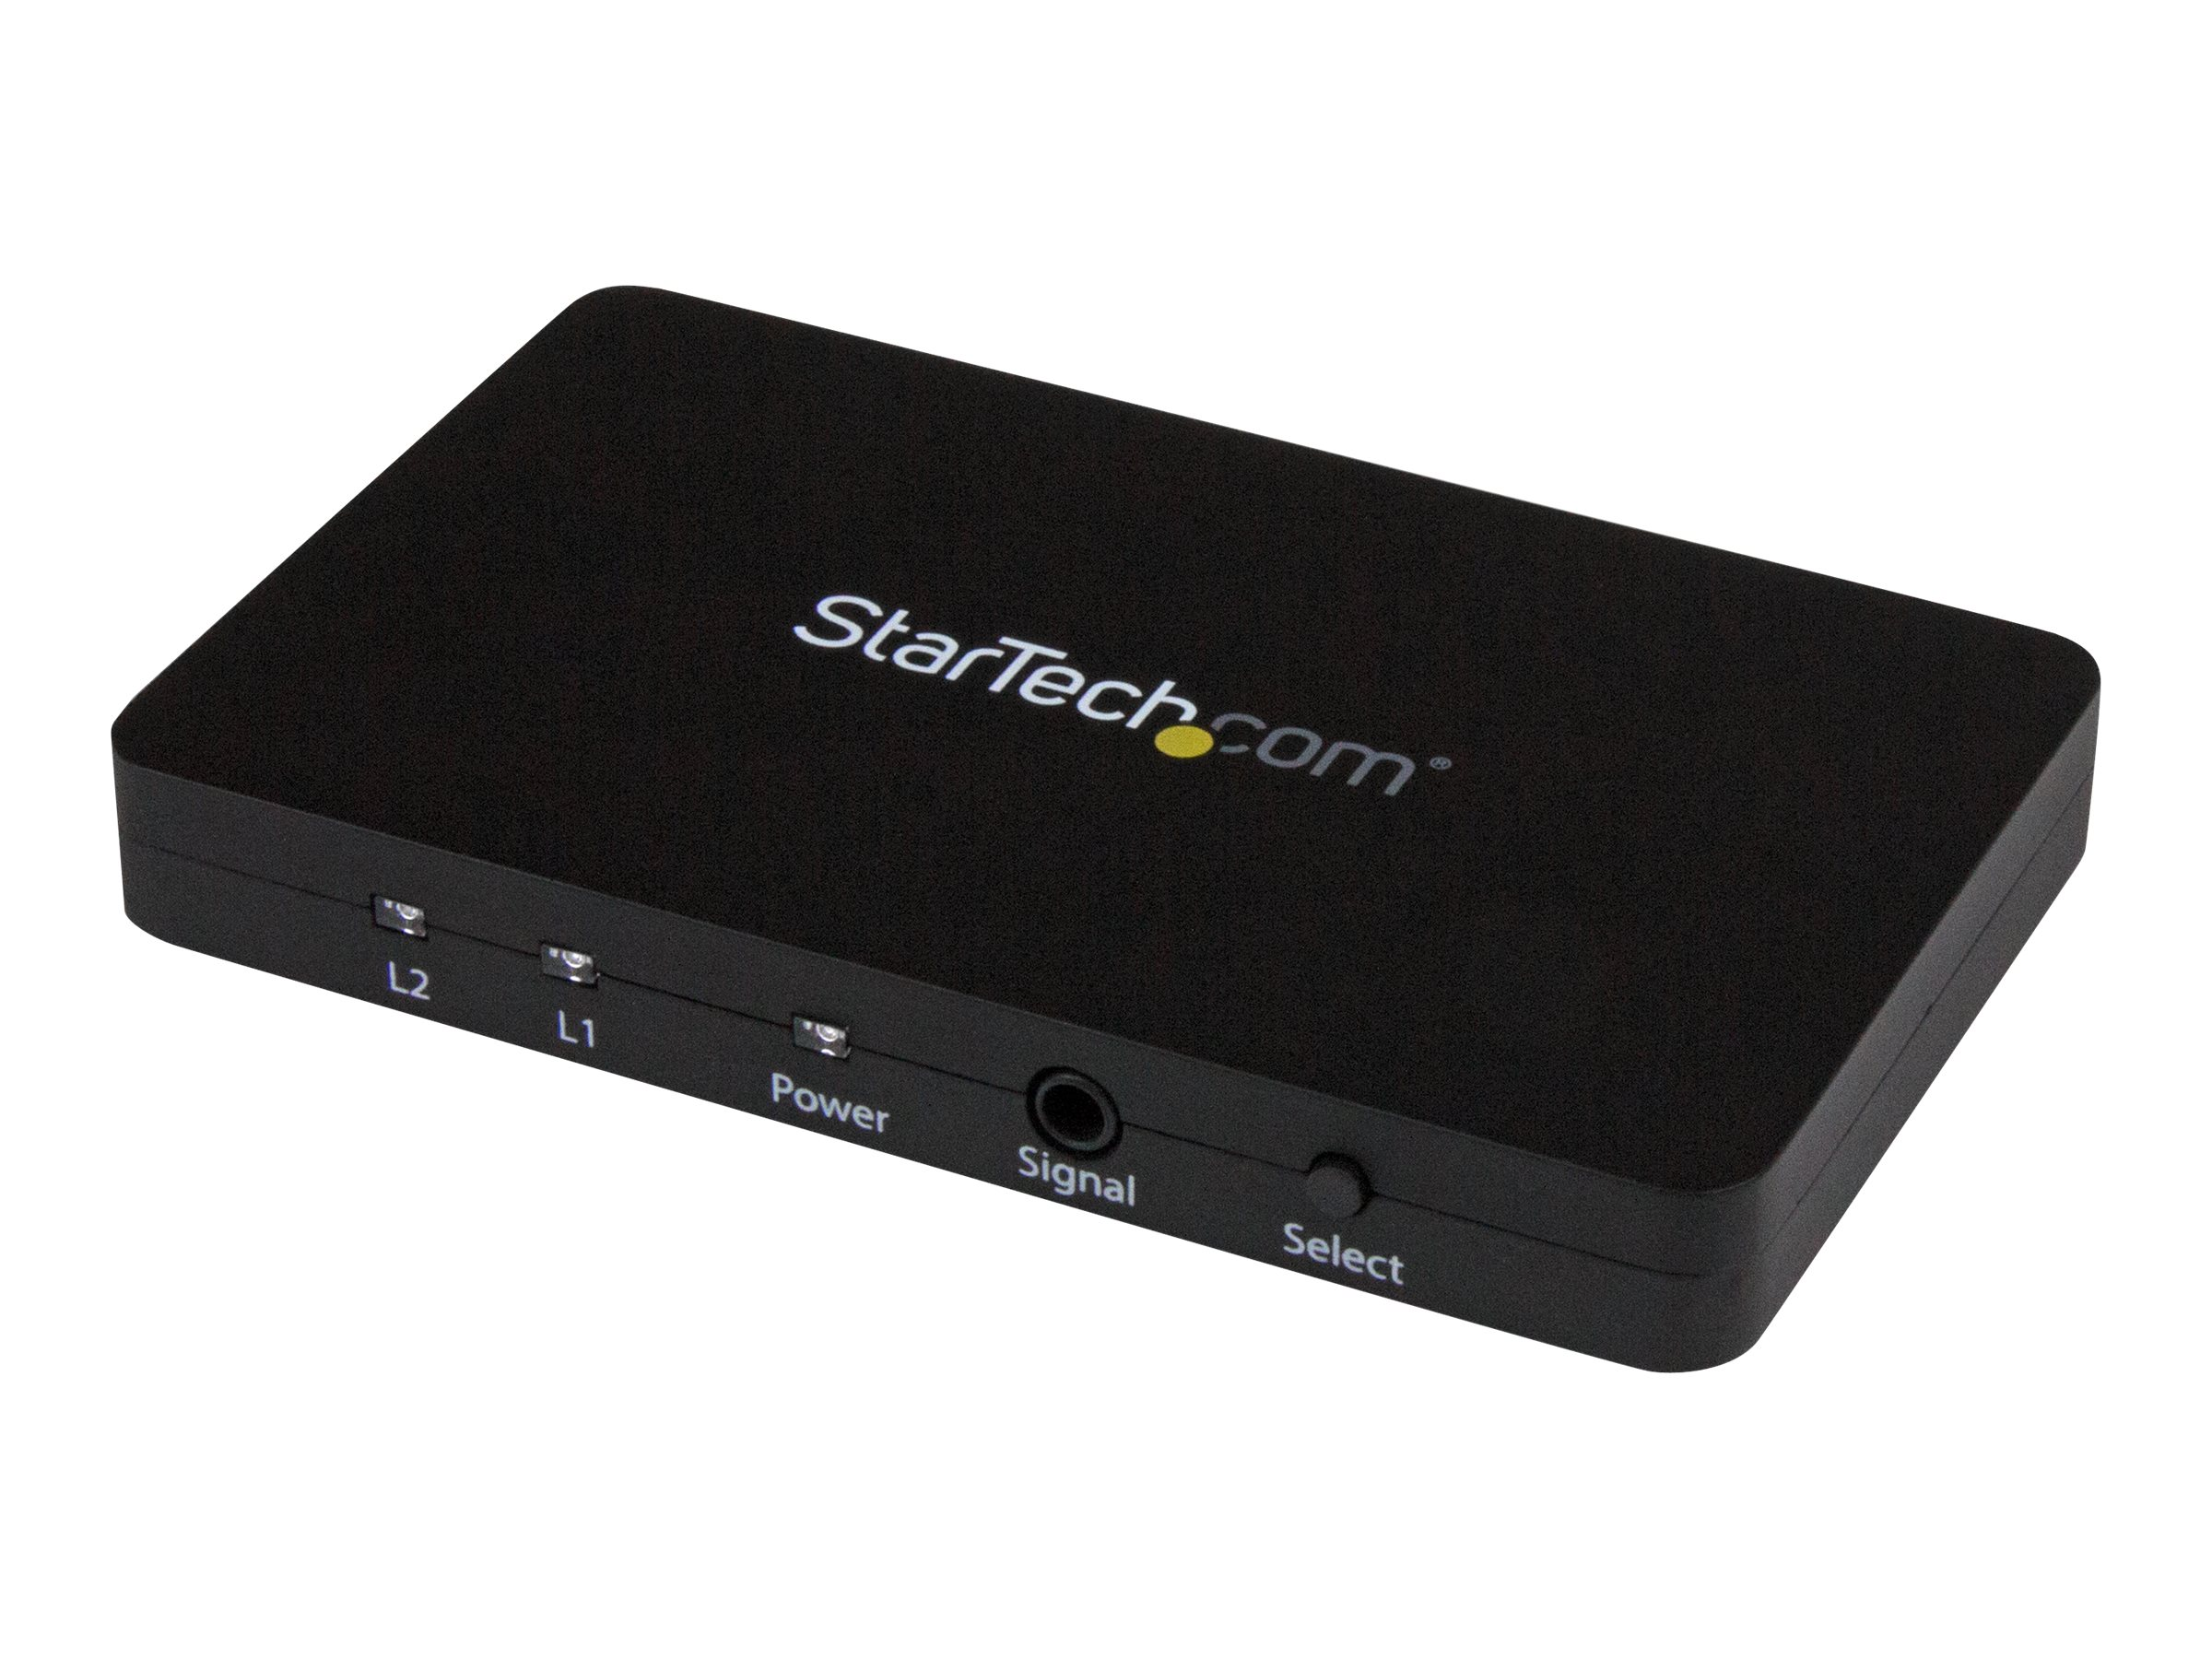 StarTech.com 2 Port HDMI Switch - Aluminum Housing and MHL Support - 2x1 HDMI Switcher Box with Support for 4K at 30Hz …